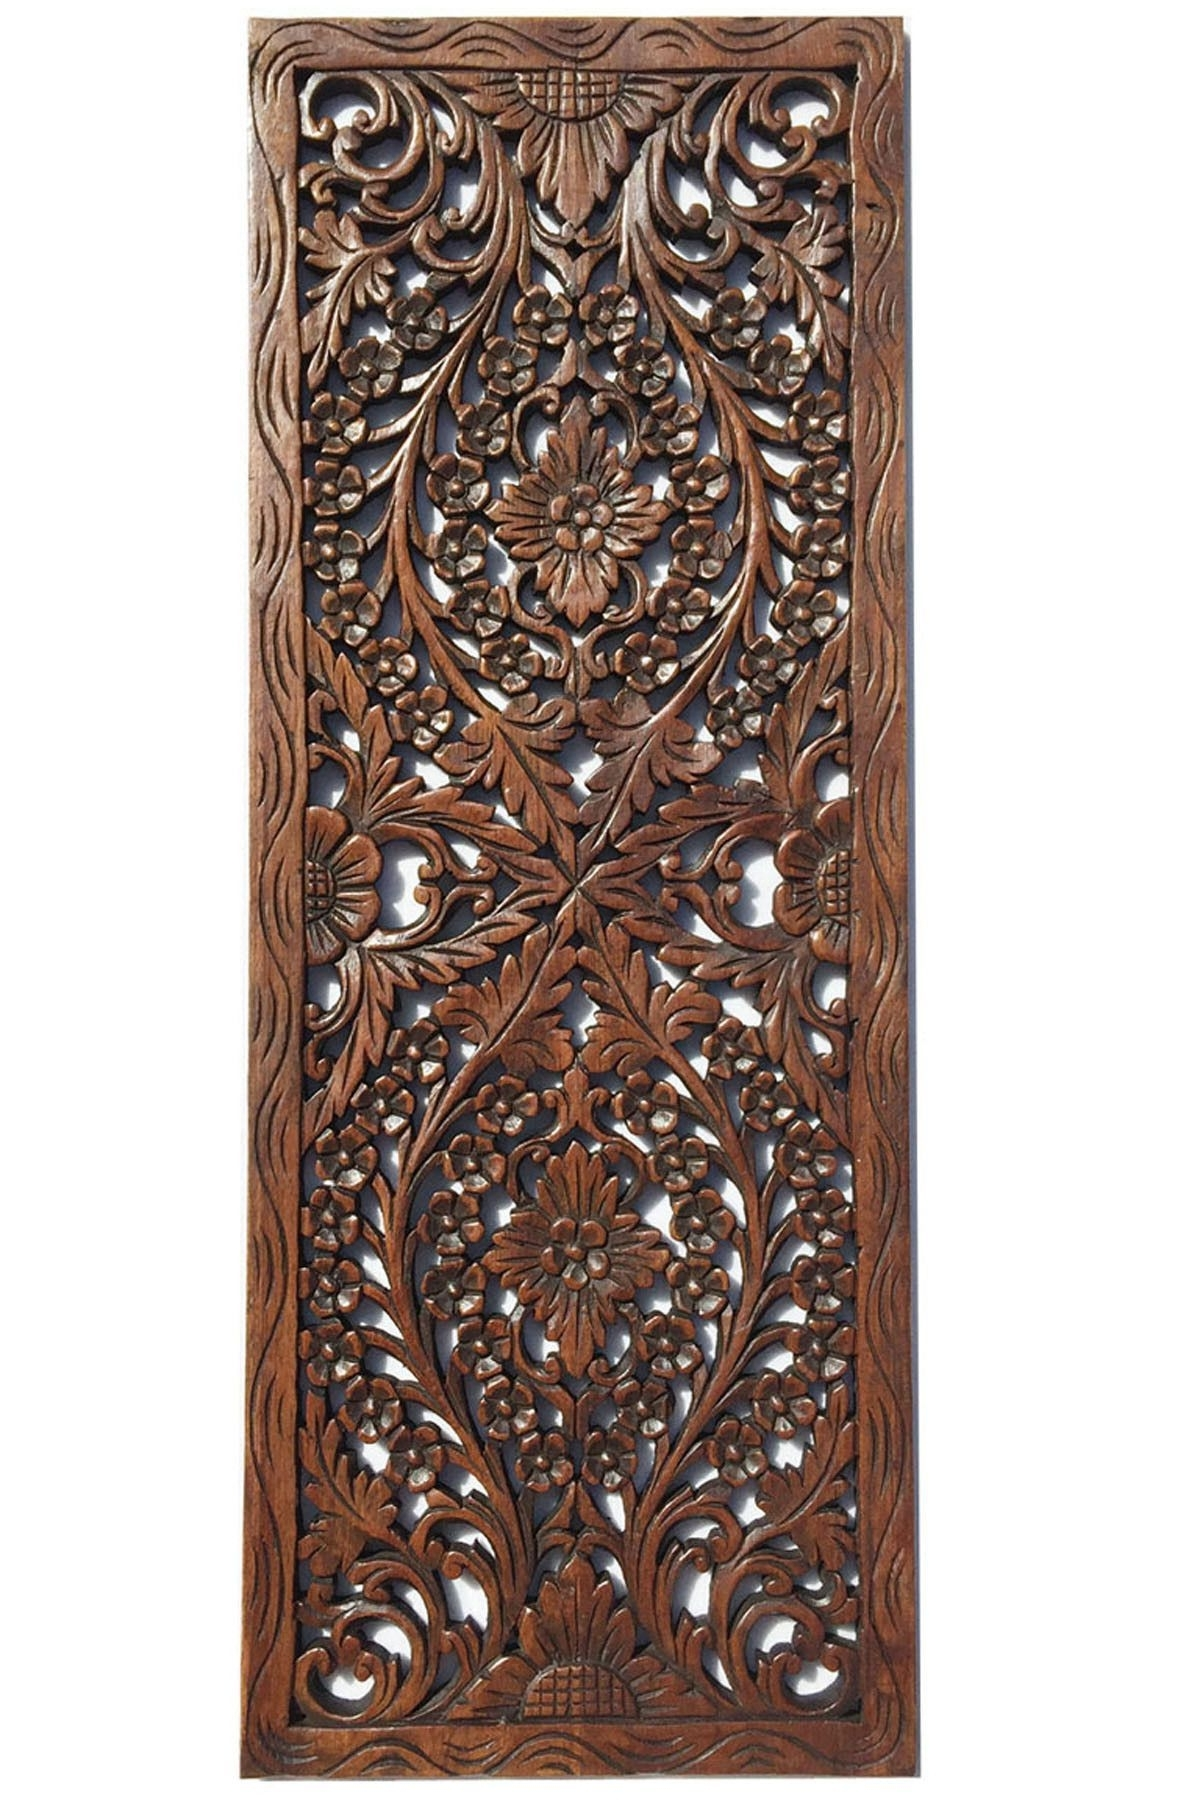 Wood Carved Wall Art Inside Newest Floral Wood Carved Wall Panel. Wall Hanging (View 18 of 20)